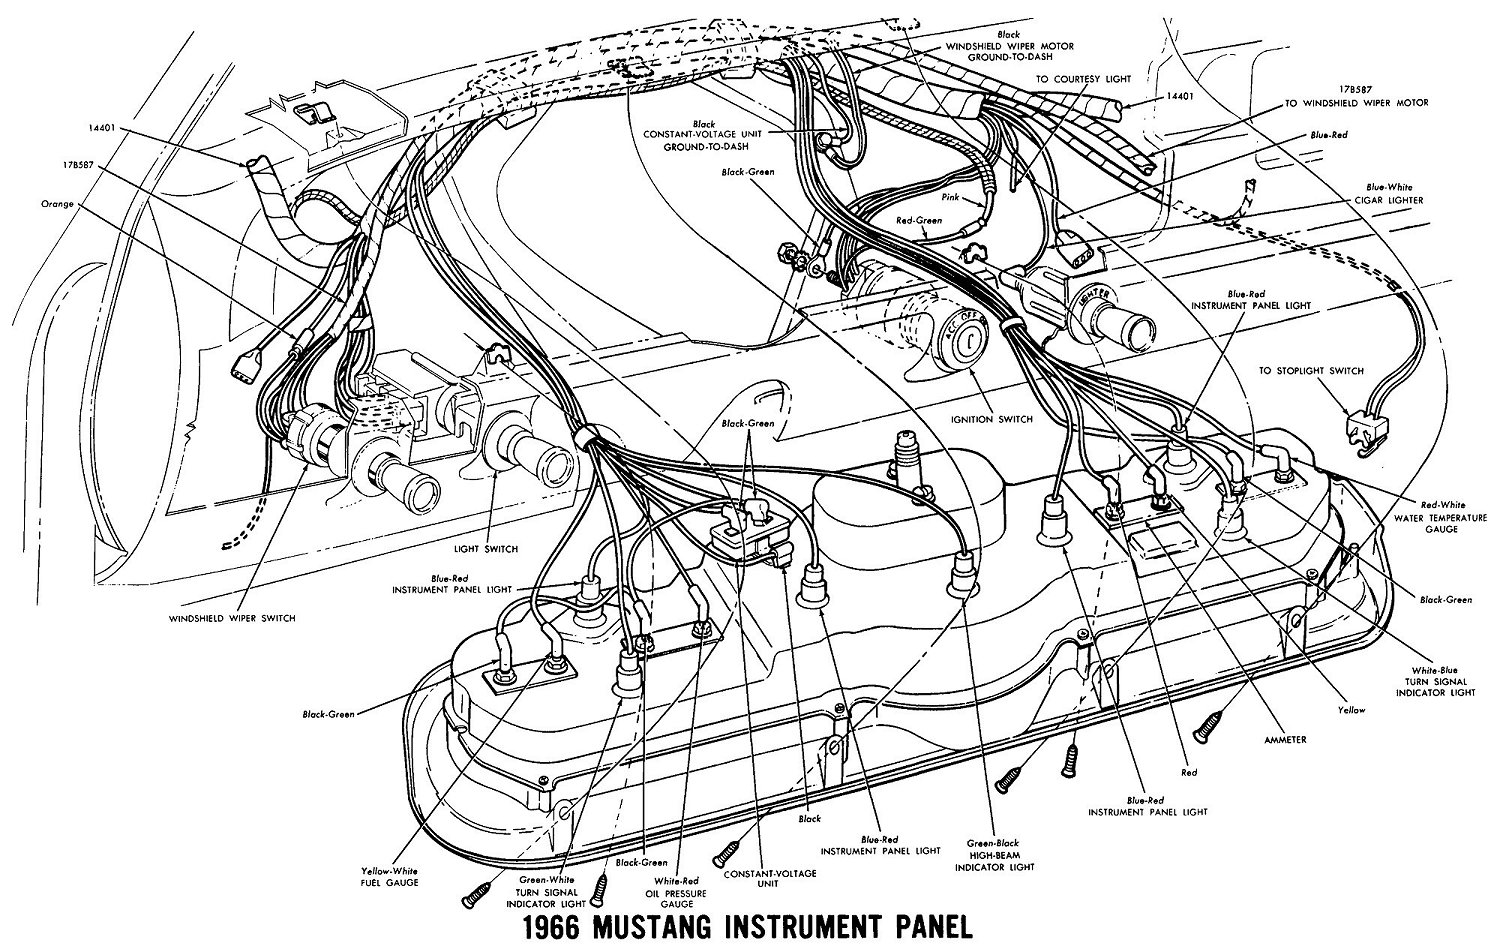 66instr 1966 mustang wiring diagrams average joe restoration 1969 mustang voltage regulator wiring diagram at mifinder.co